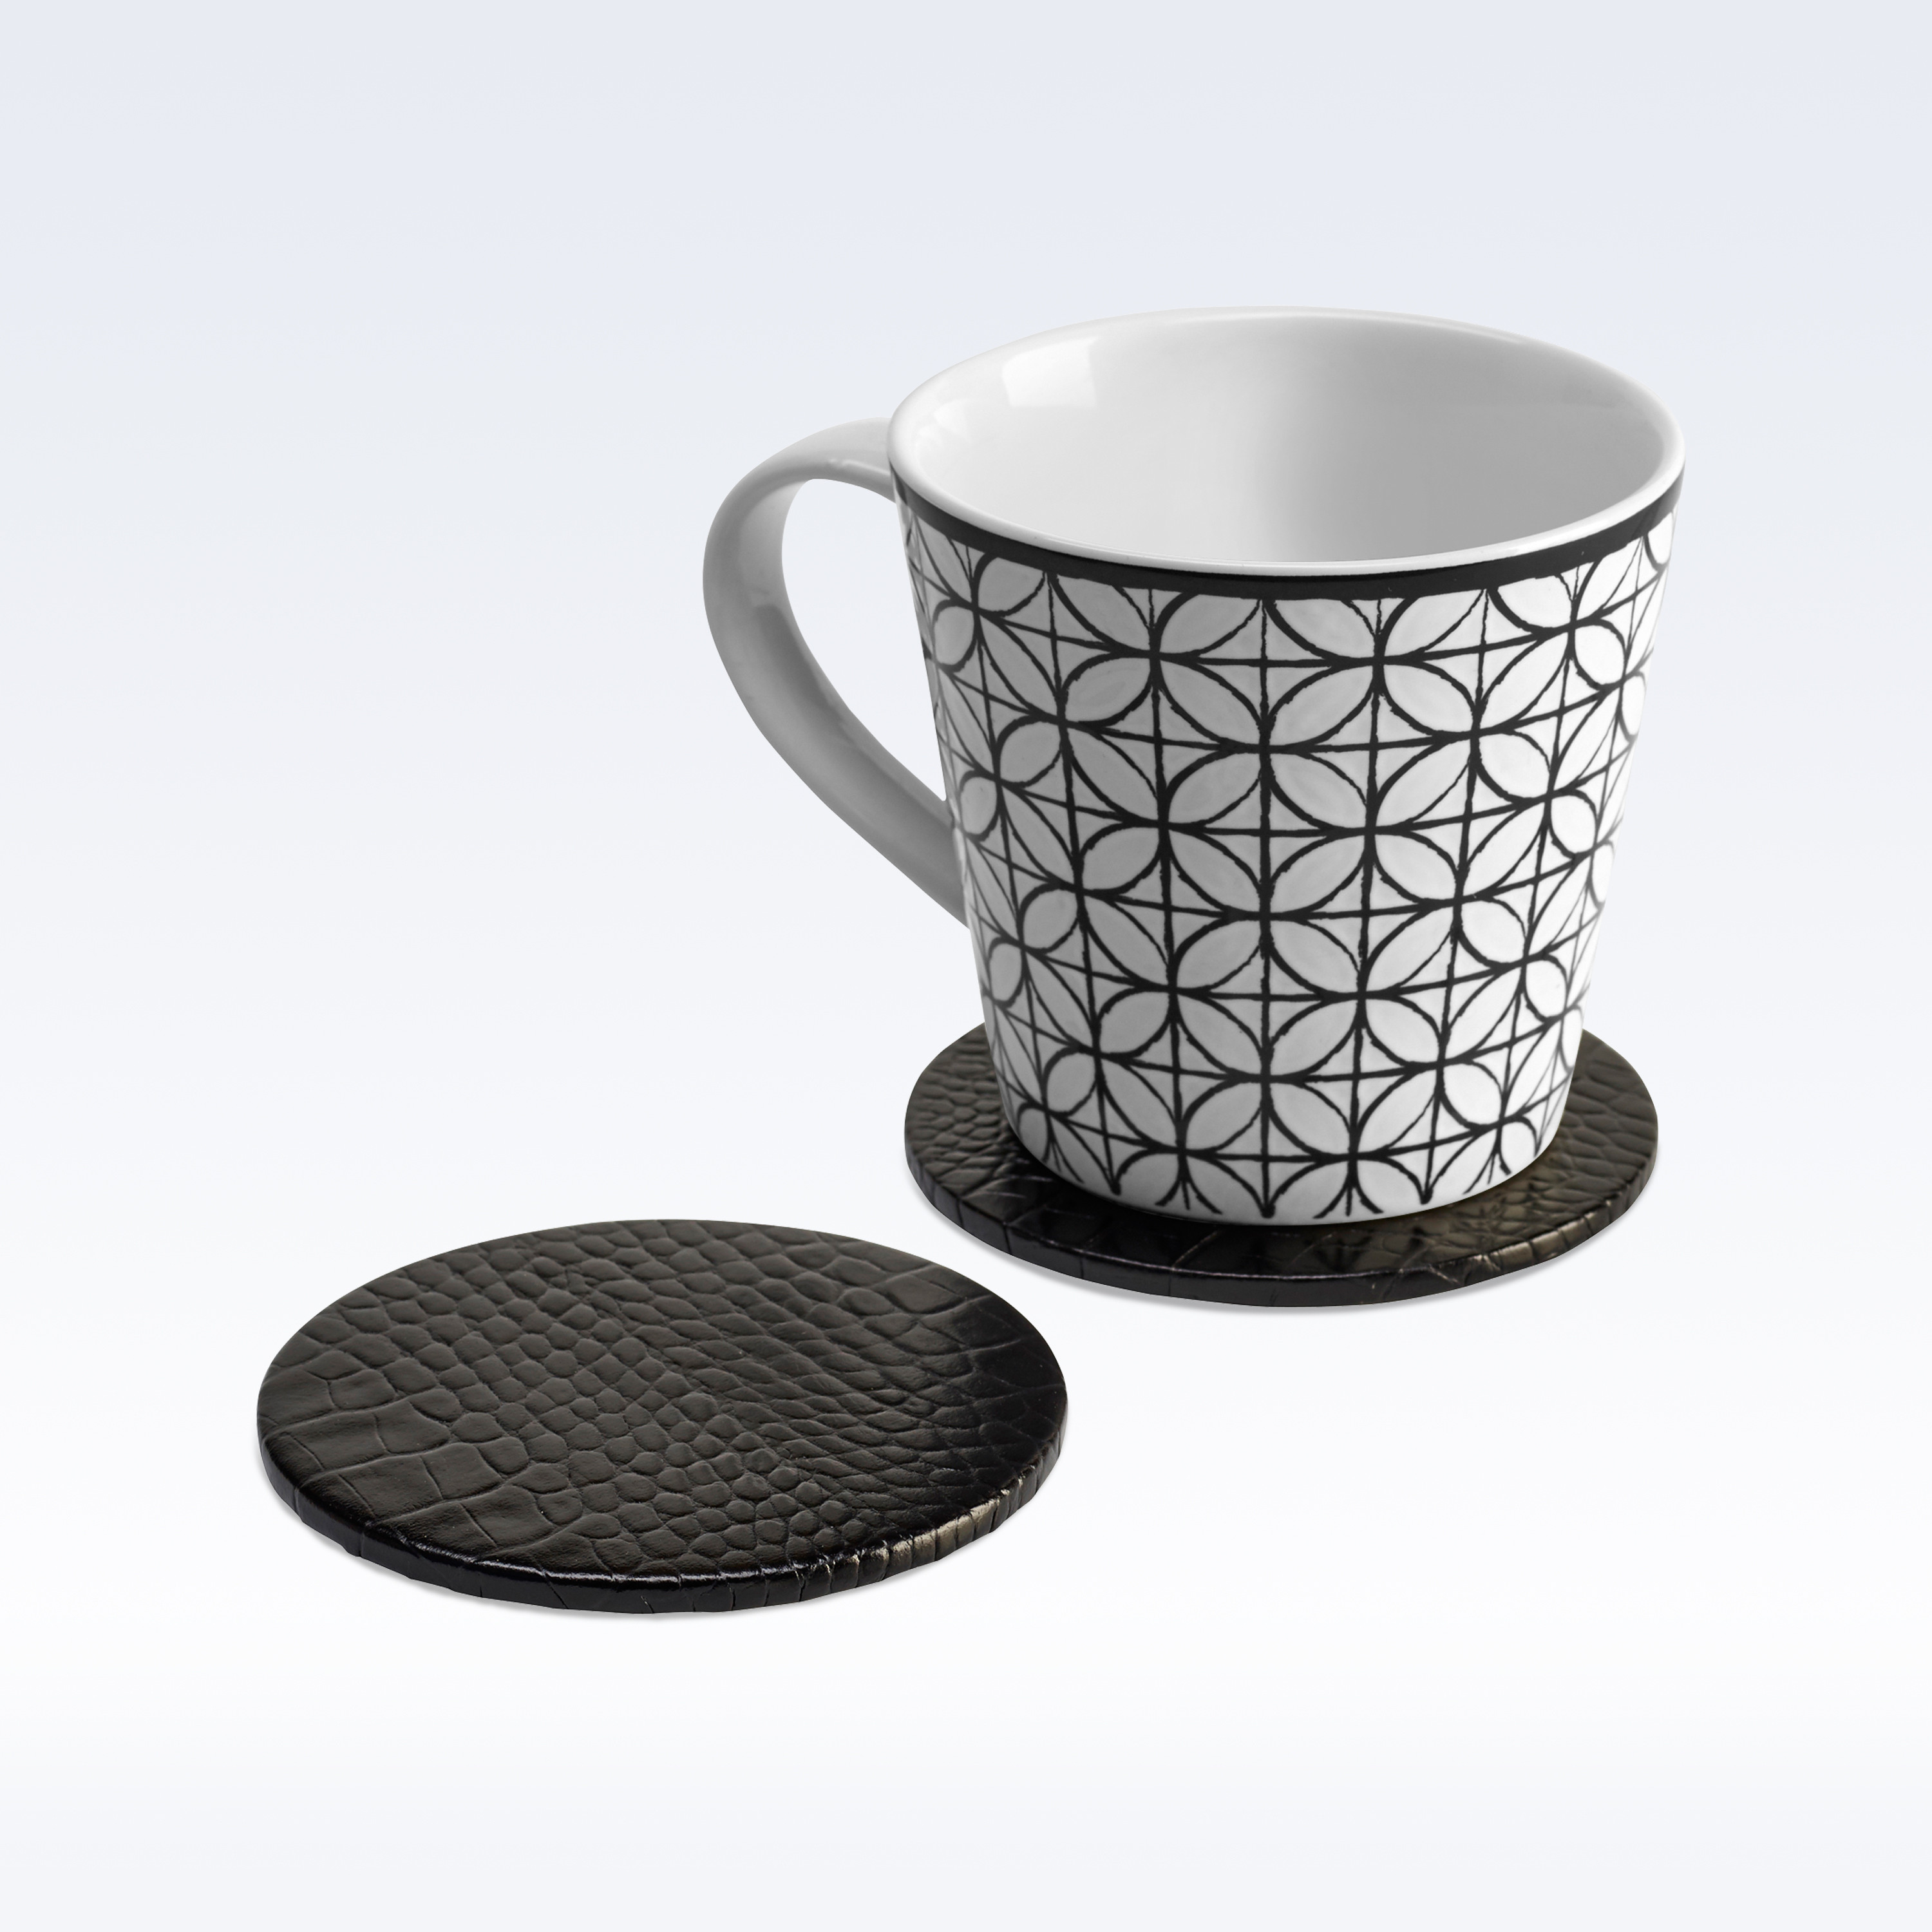 Black Croc Leather Round Coaster Coasters Home Office